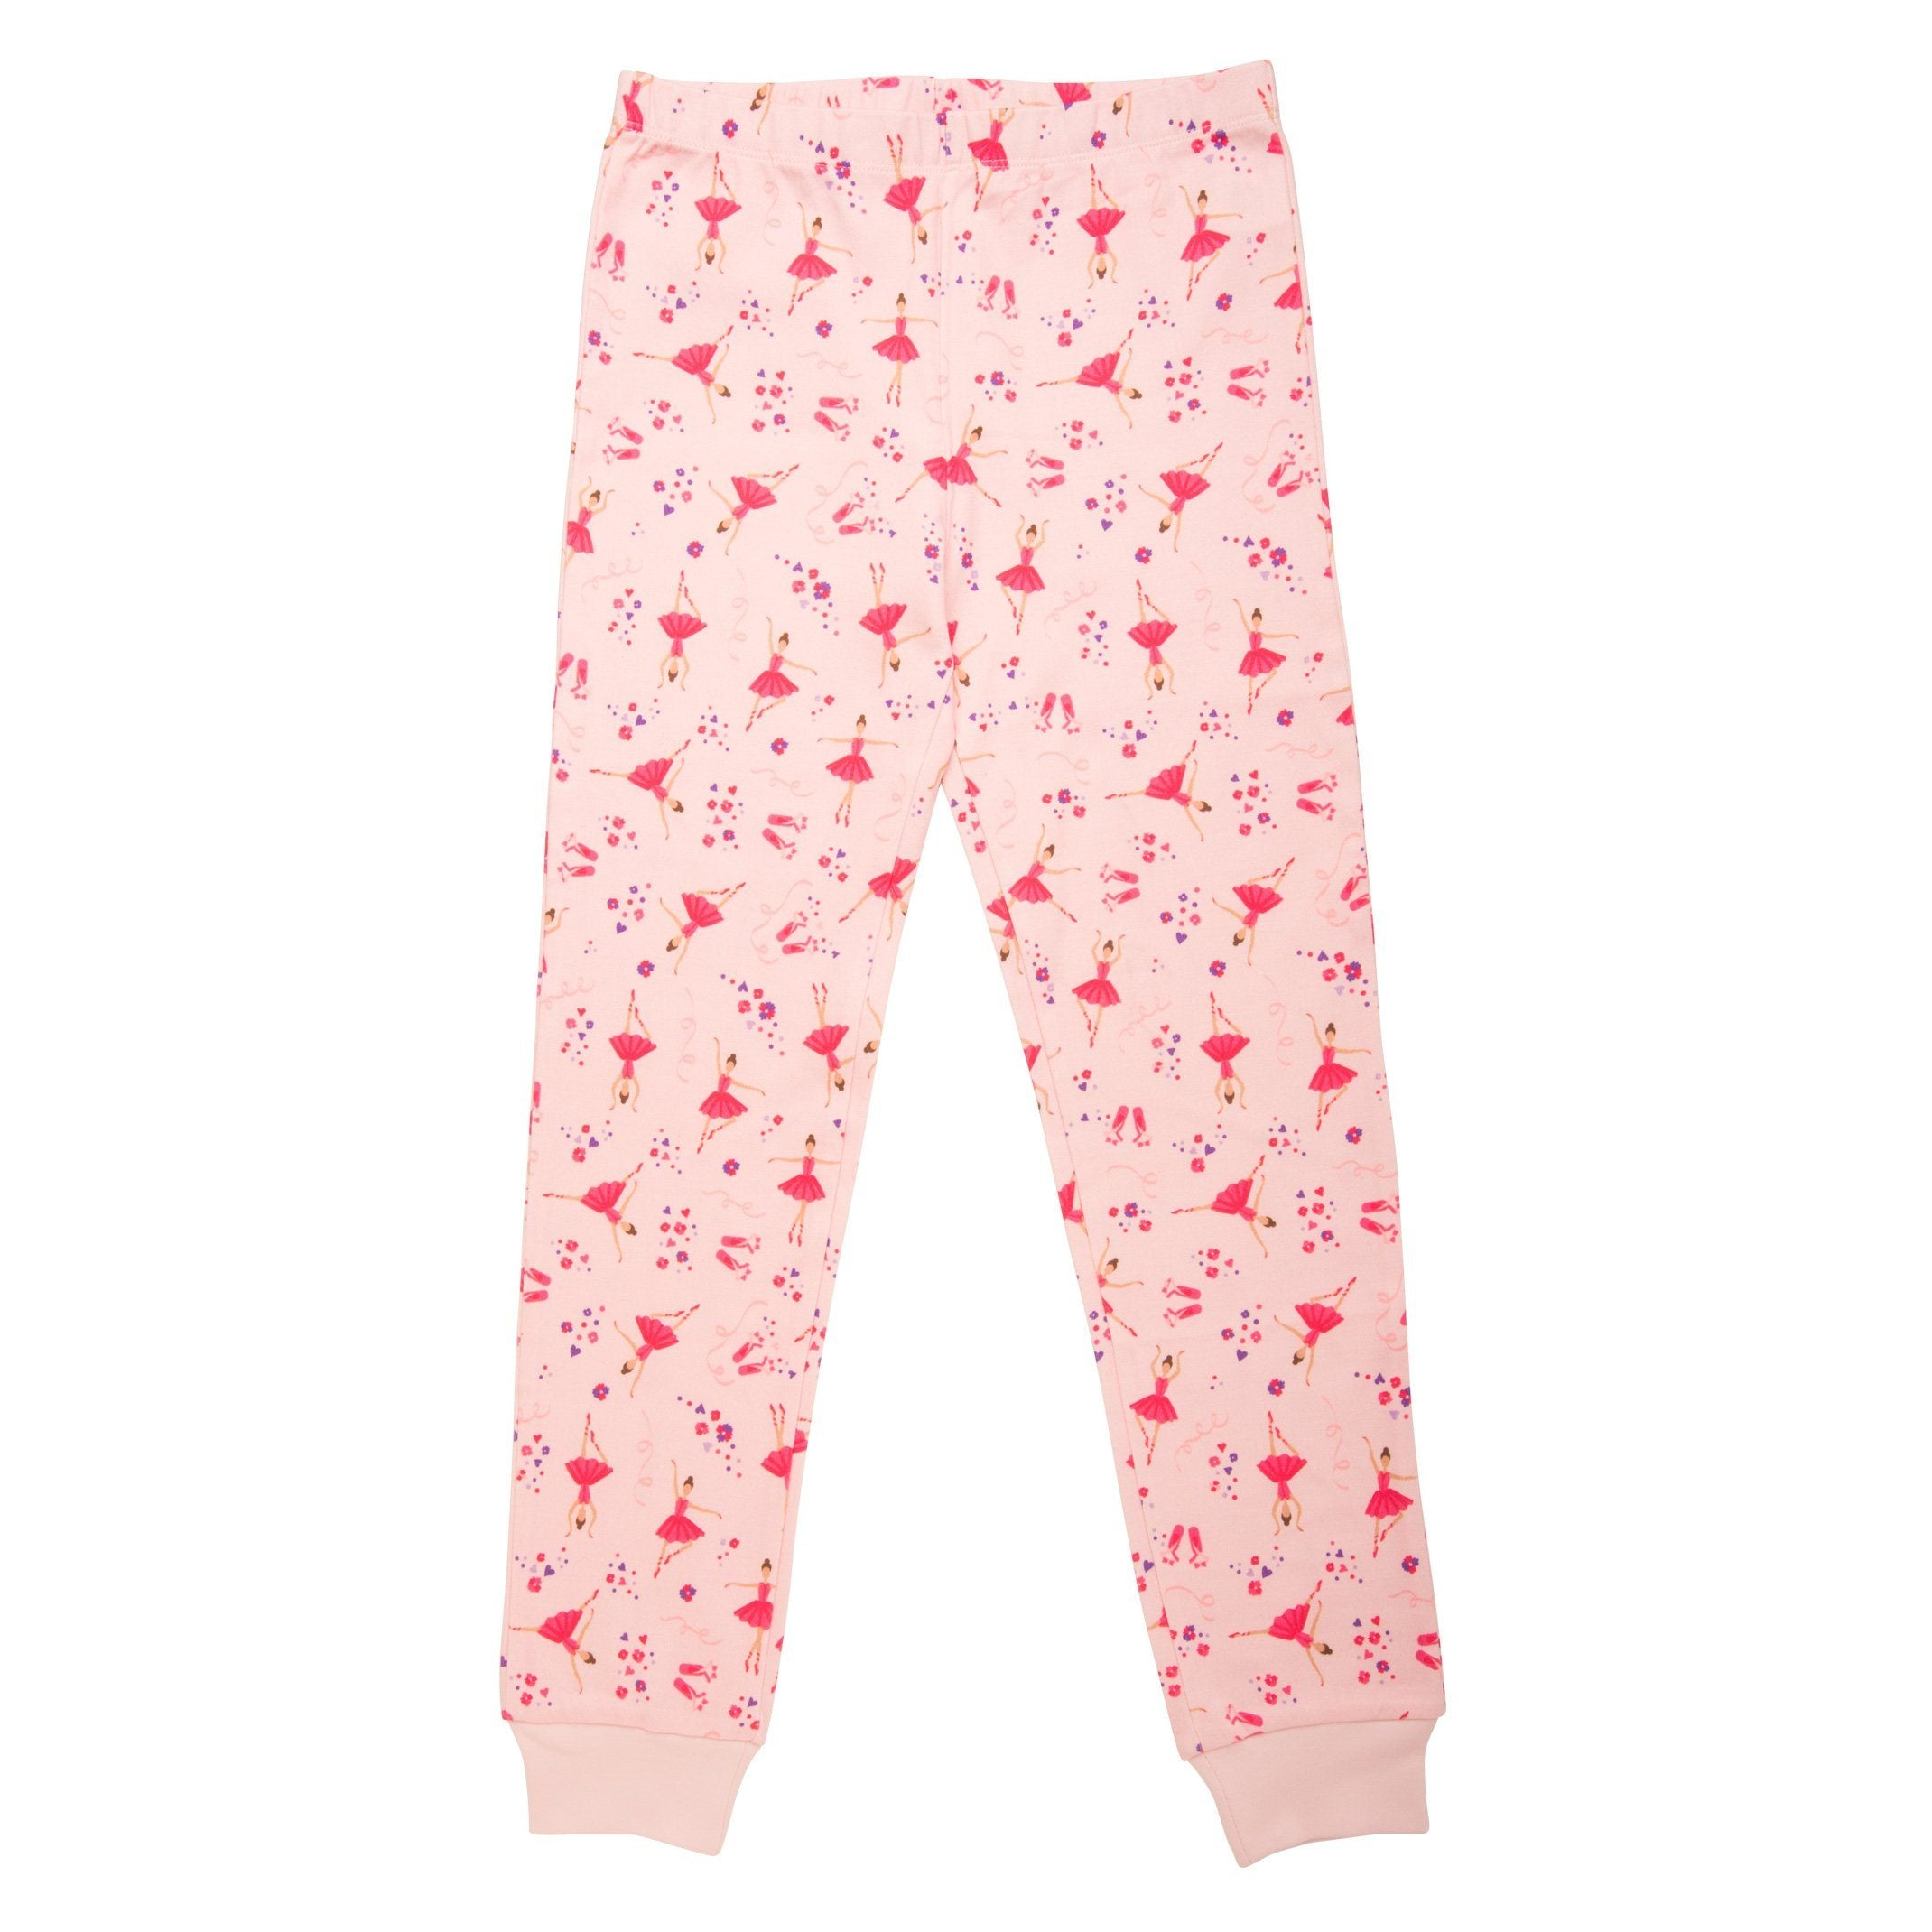 Sugarplum PJs for Girls